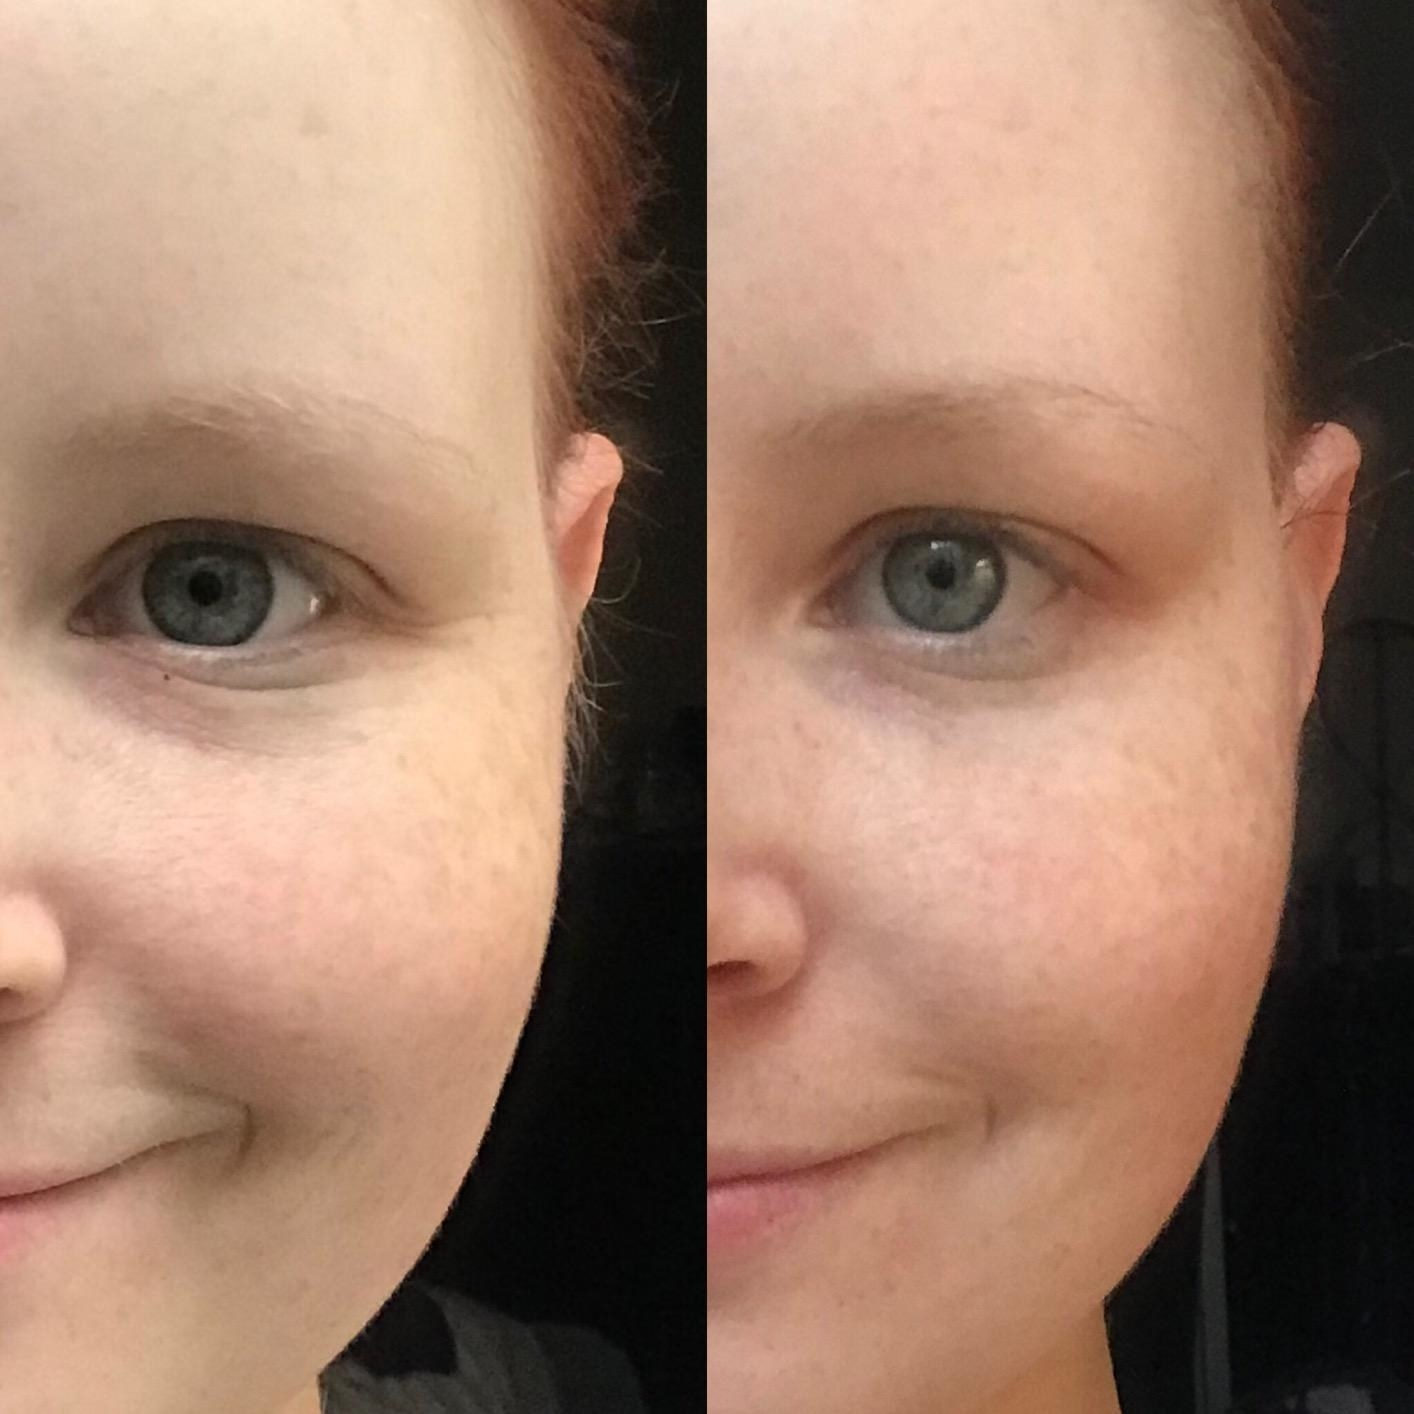 reviewer photo showing their under-eye area before and after using the Zombie mask